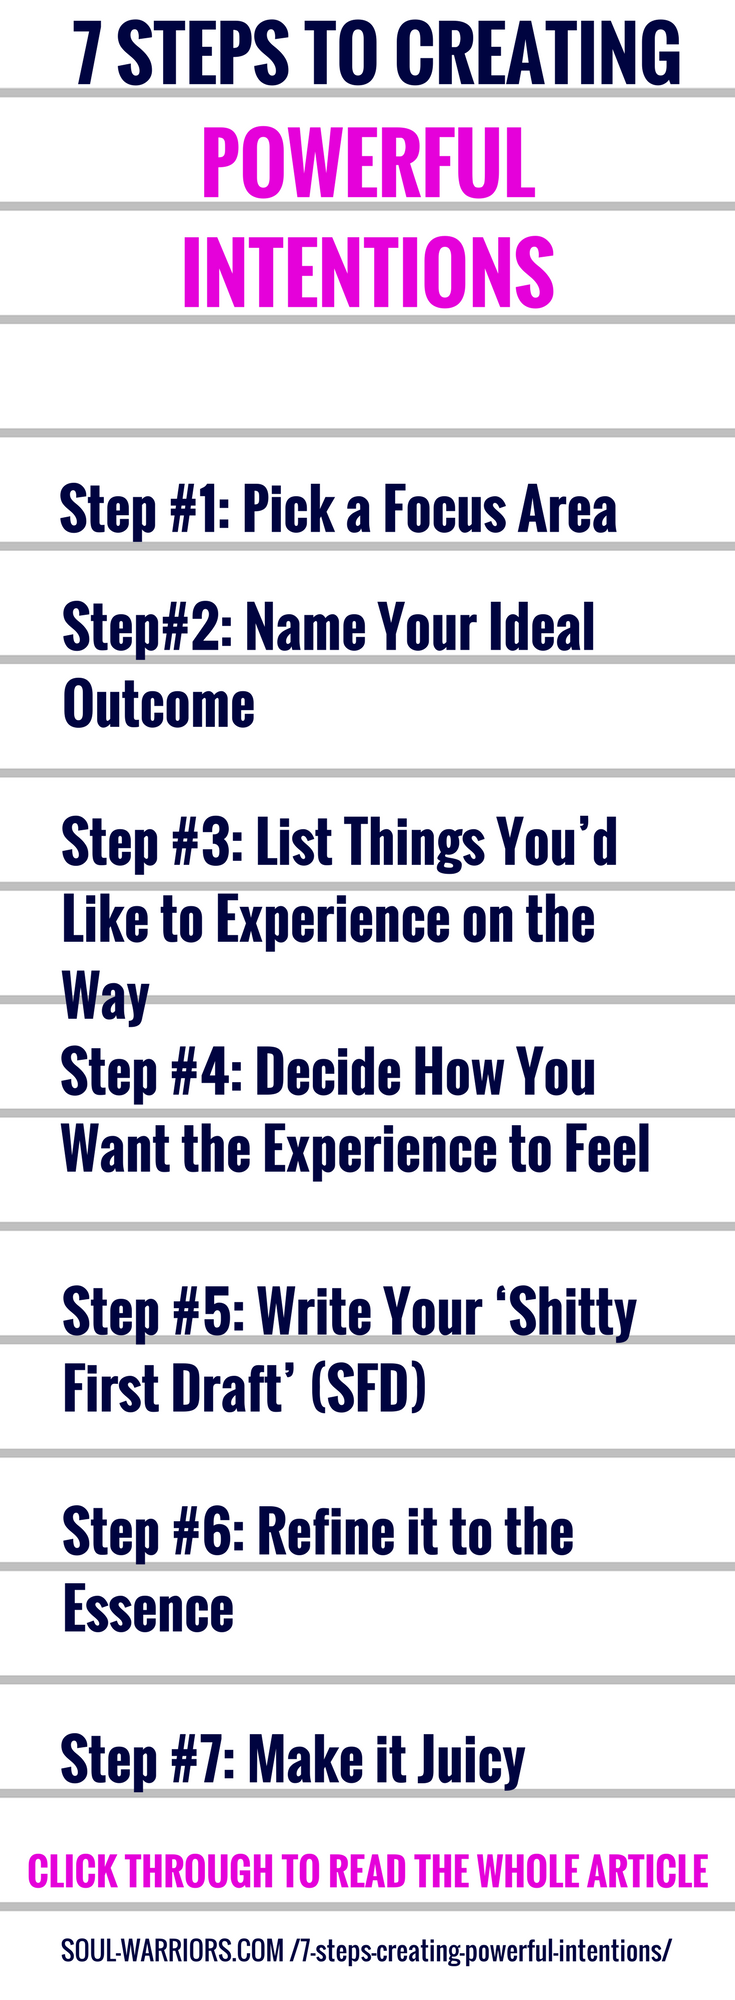 Try this 7 step process to creating powerful intentions by making them so juicy that you can't wait to get started living them. Click through to read the whole post: http://www.soul-warriors.com/7-steps-creating-powerful-intentions